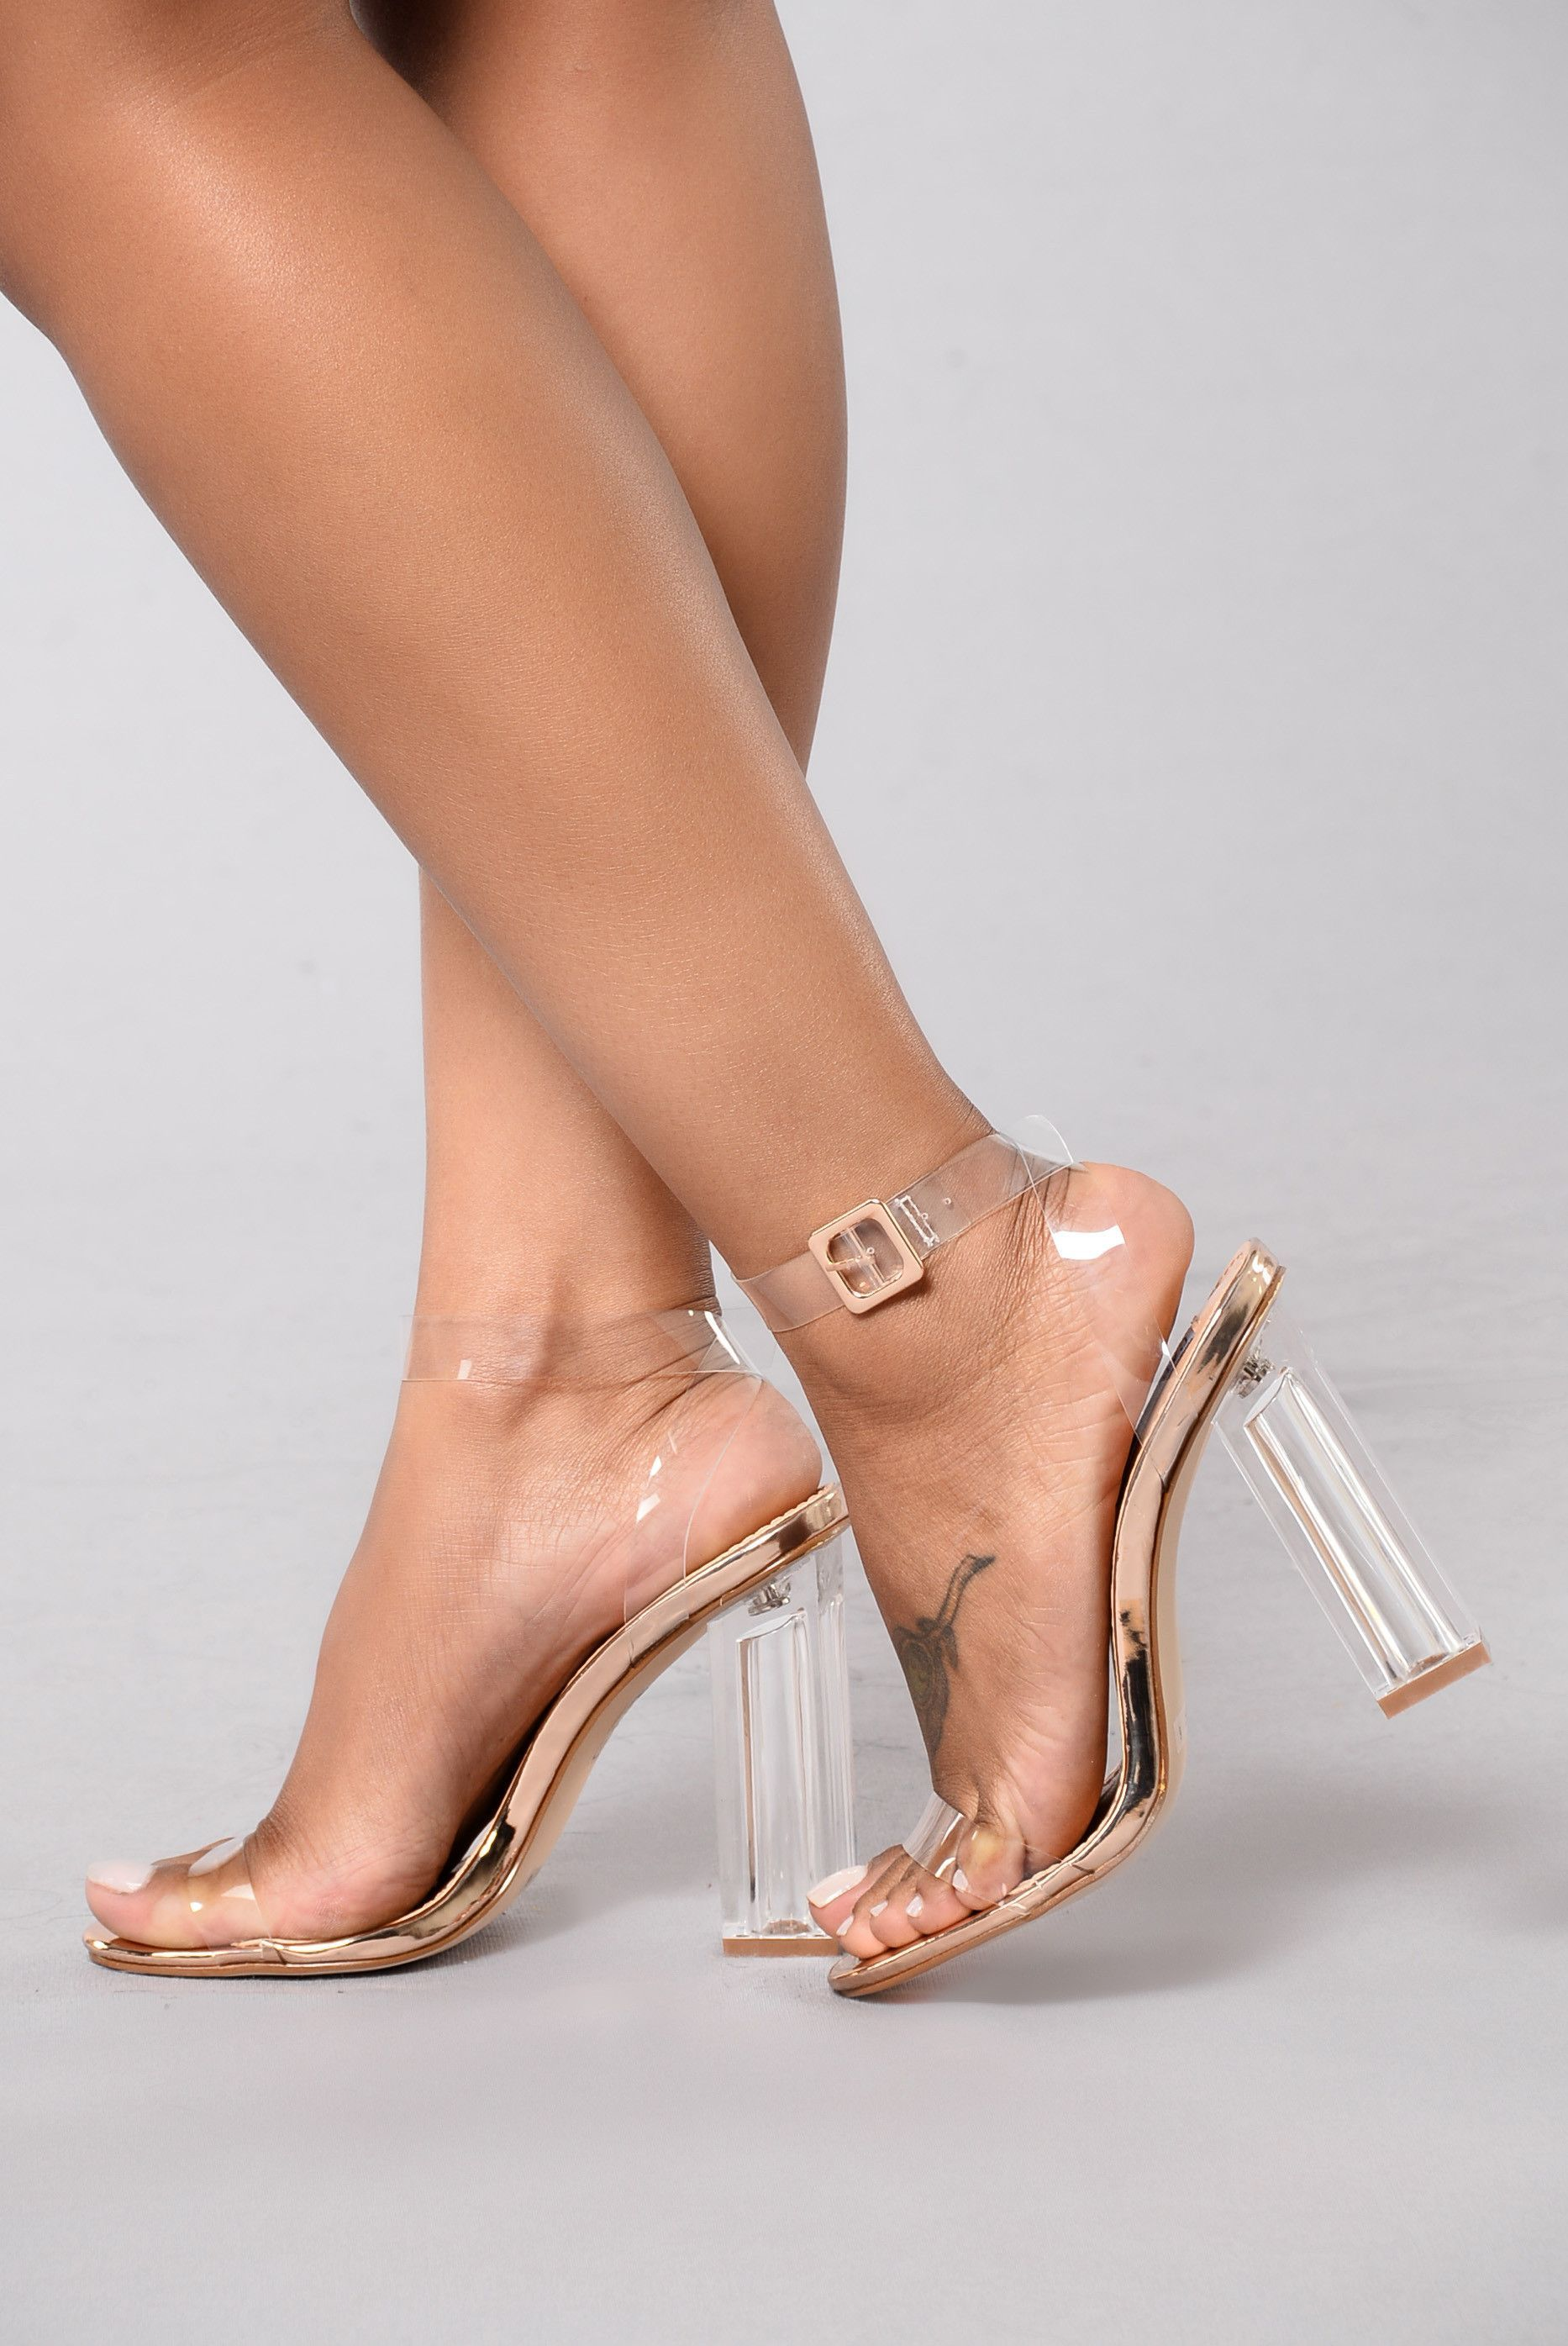 abcc3aeab8a The Glass Slipper - Rose Gold. The Glass Slipper - Rose Gold Clear Heels ...